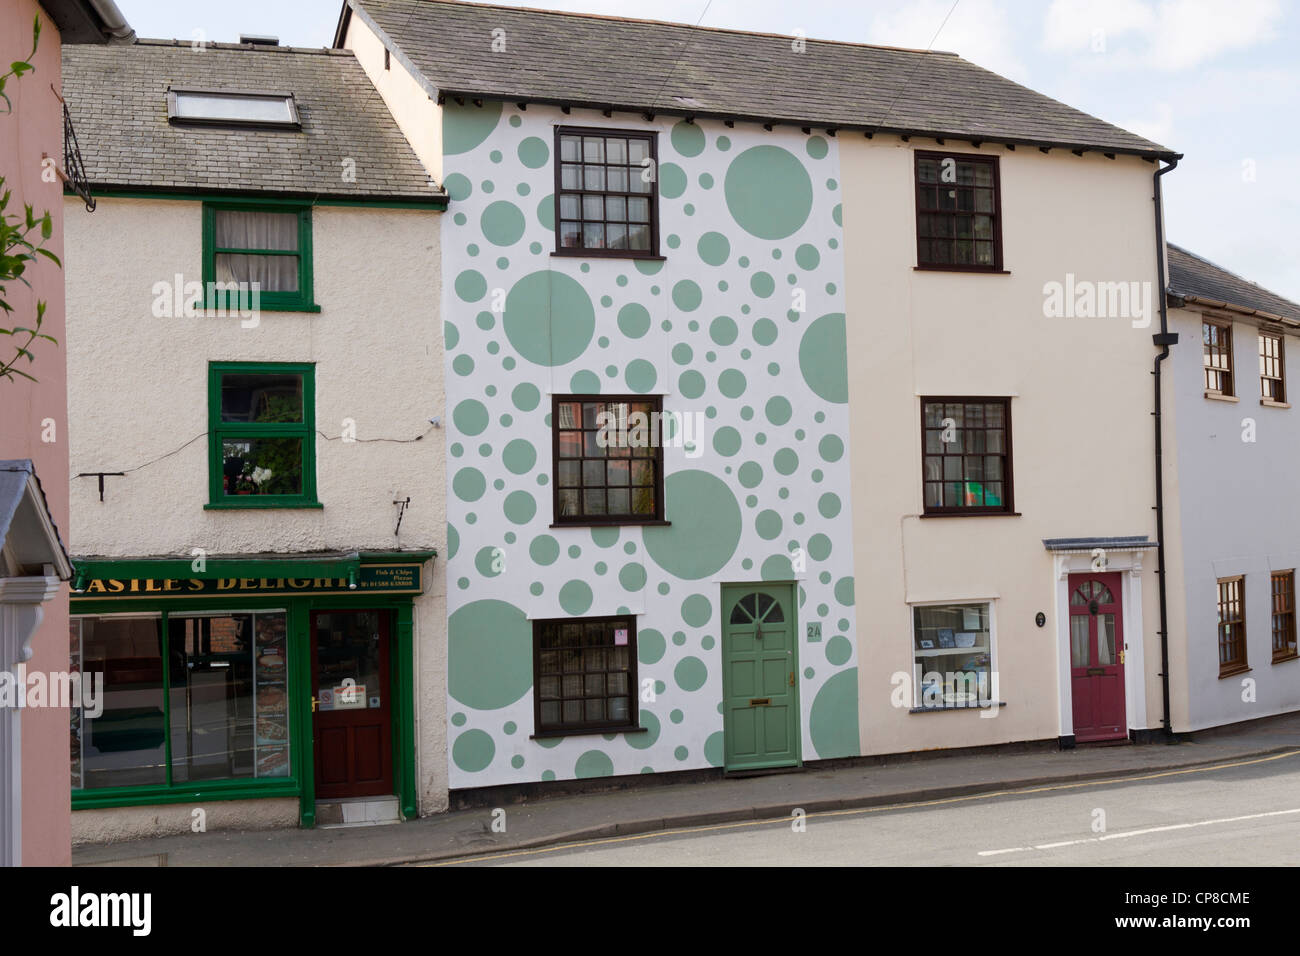 Terraced house painted with spots in Bishops Castle Shropshire Stock Photo